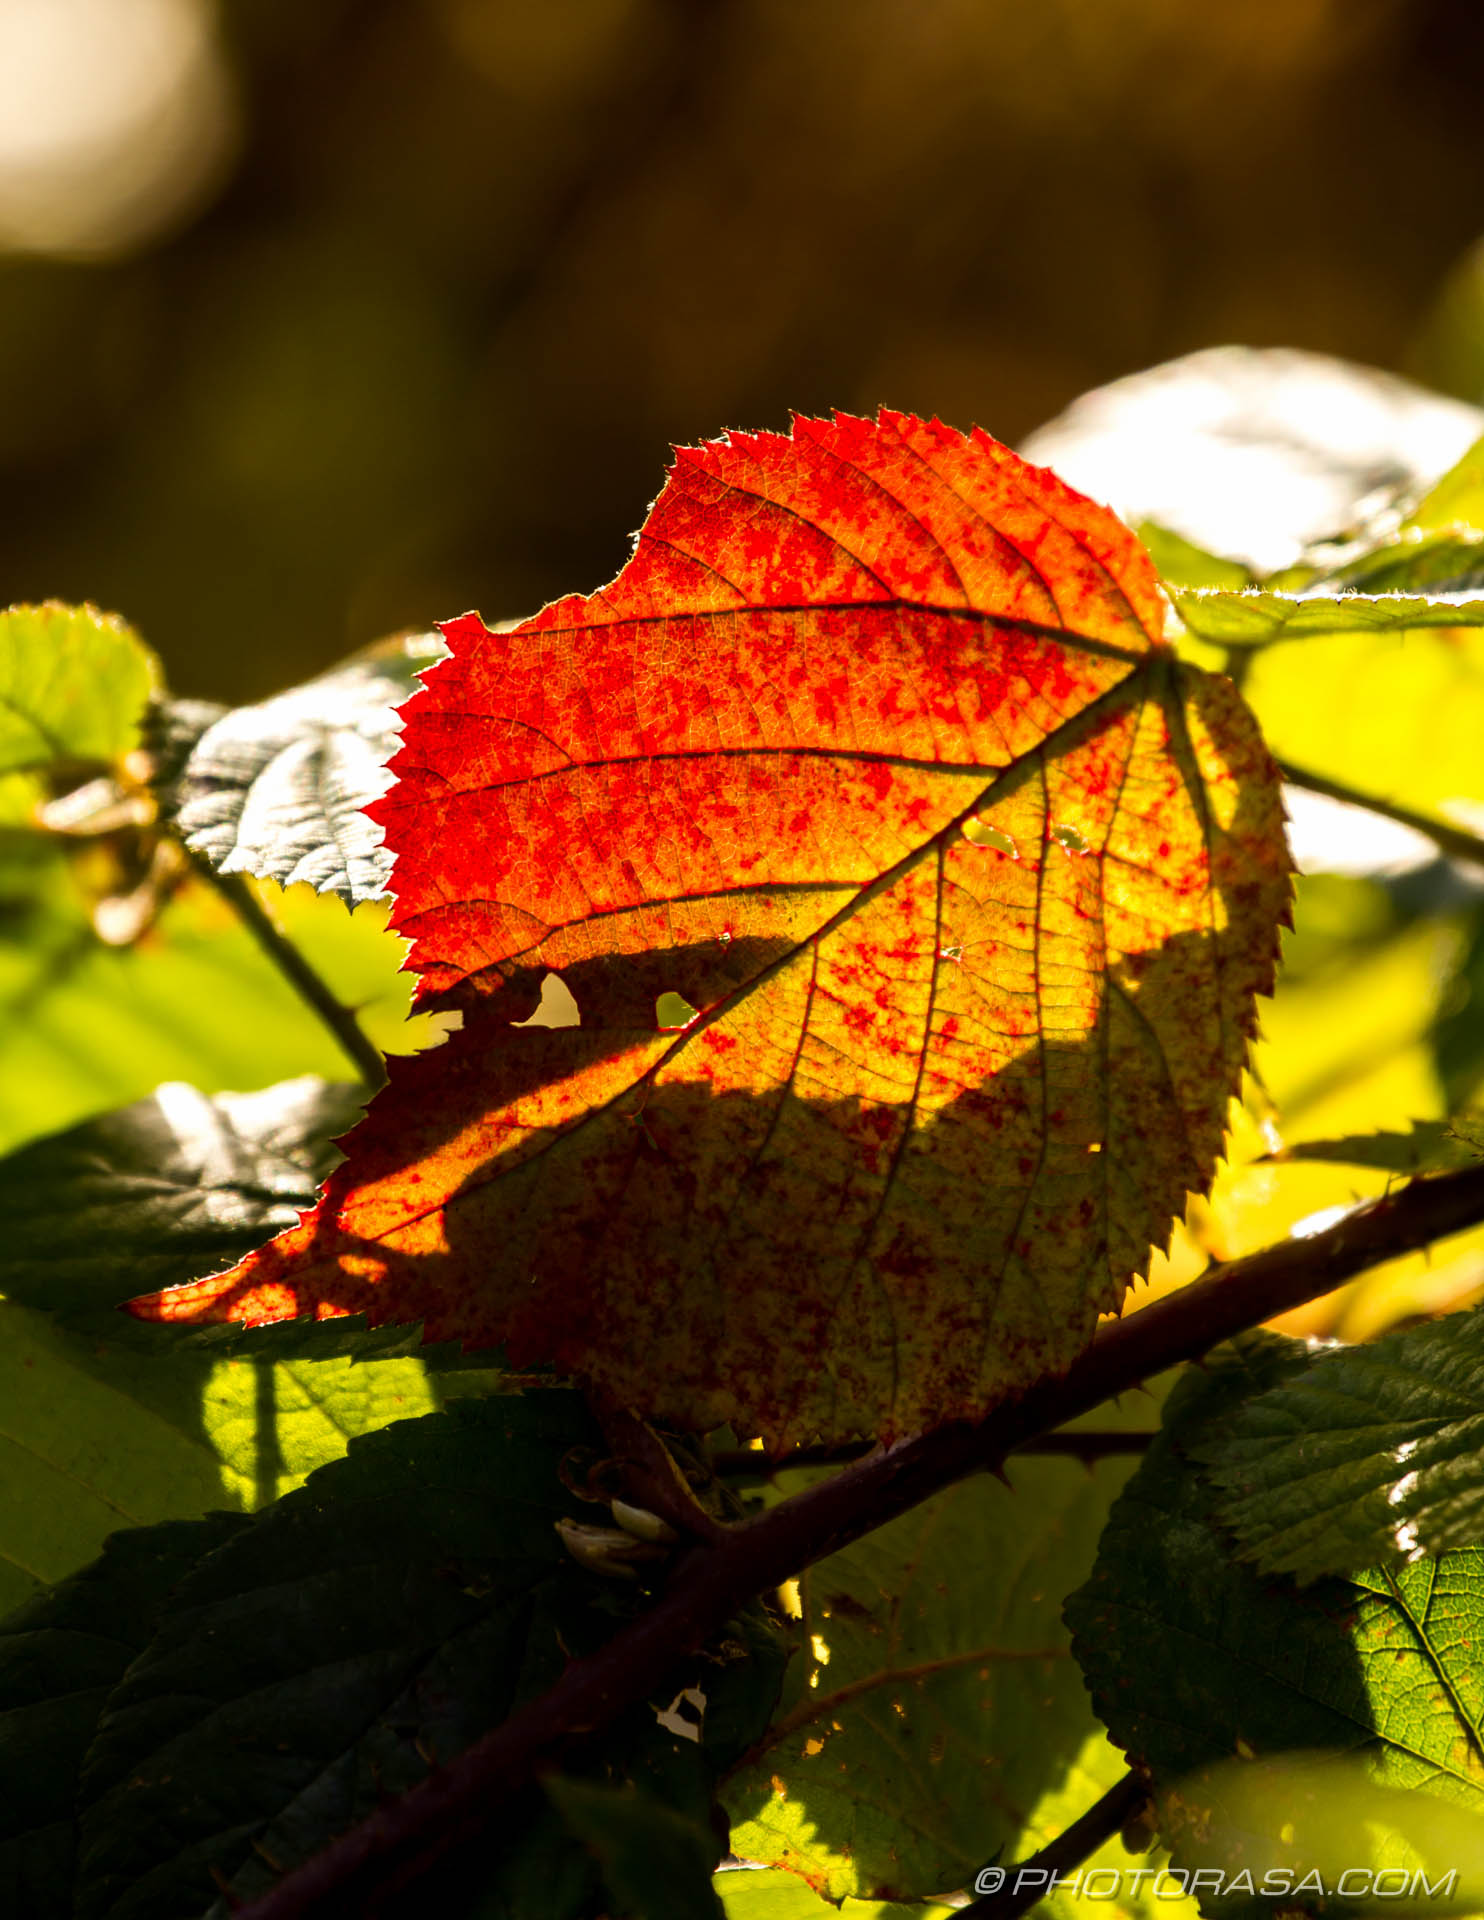 http://photorasa.com/autumn-leaves-sunlight/red-stained-leaf-in-sunlight/